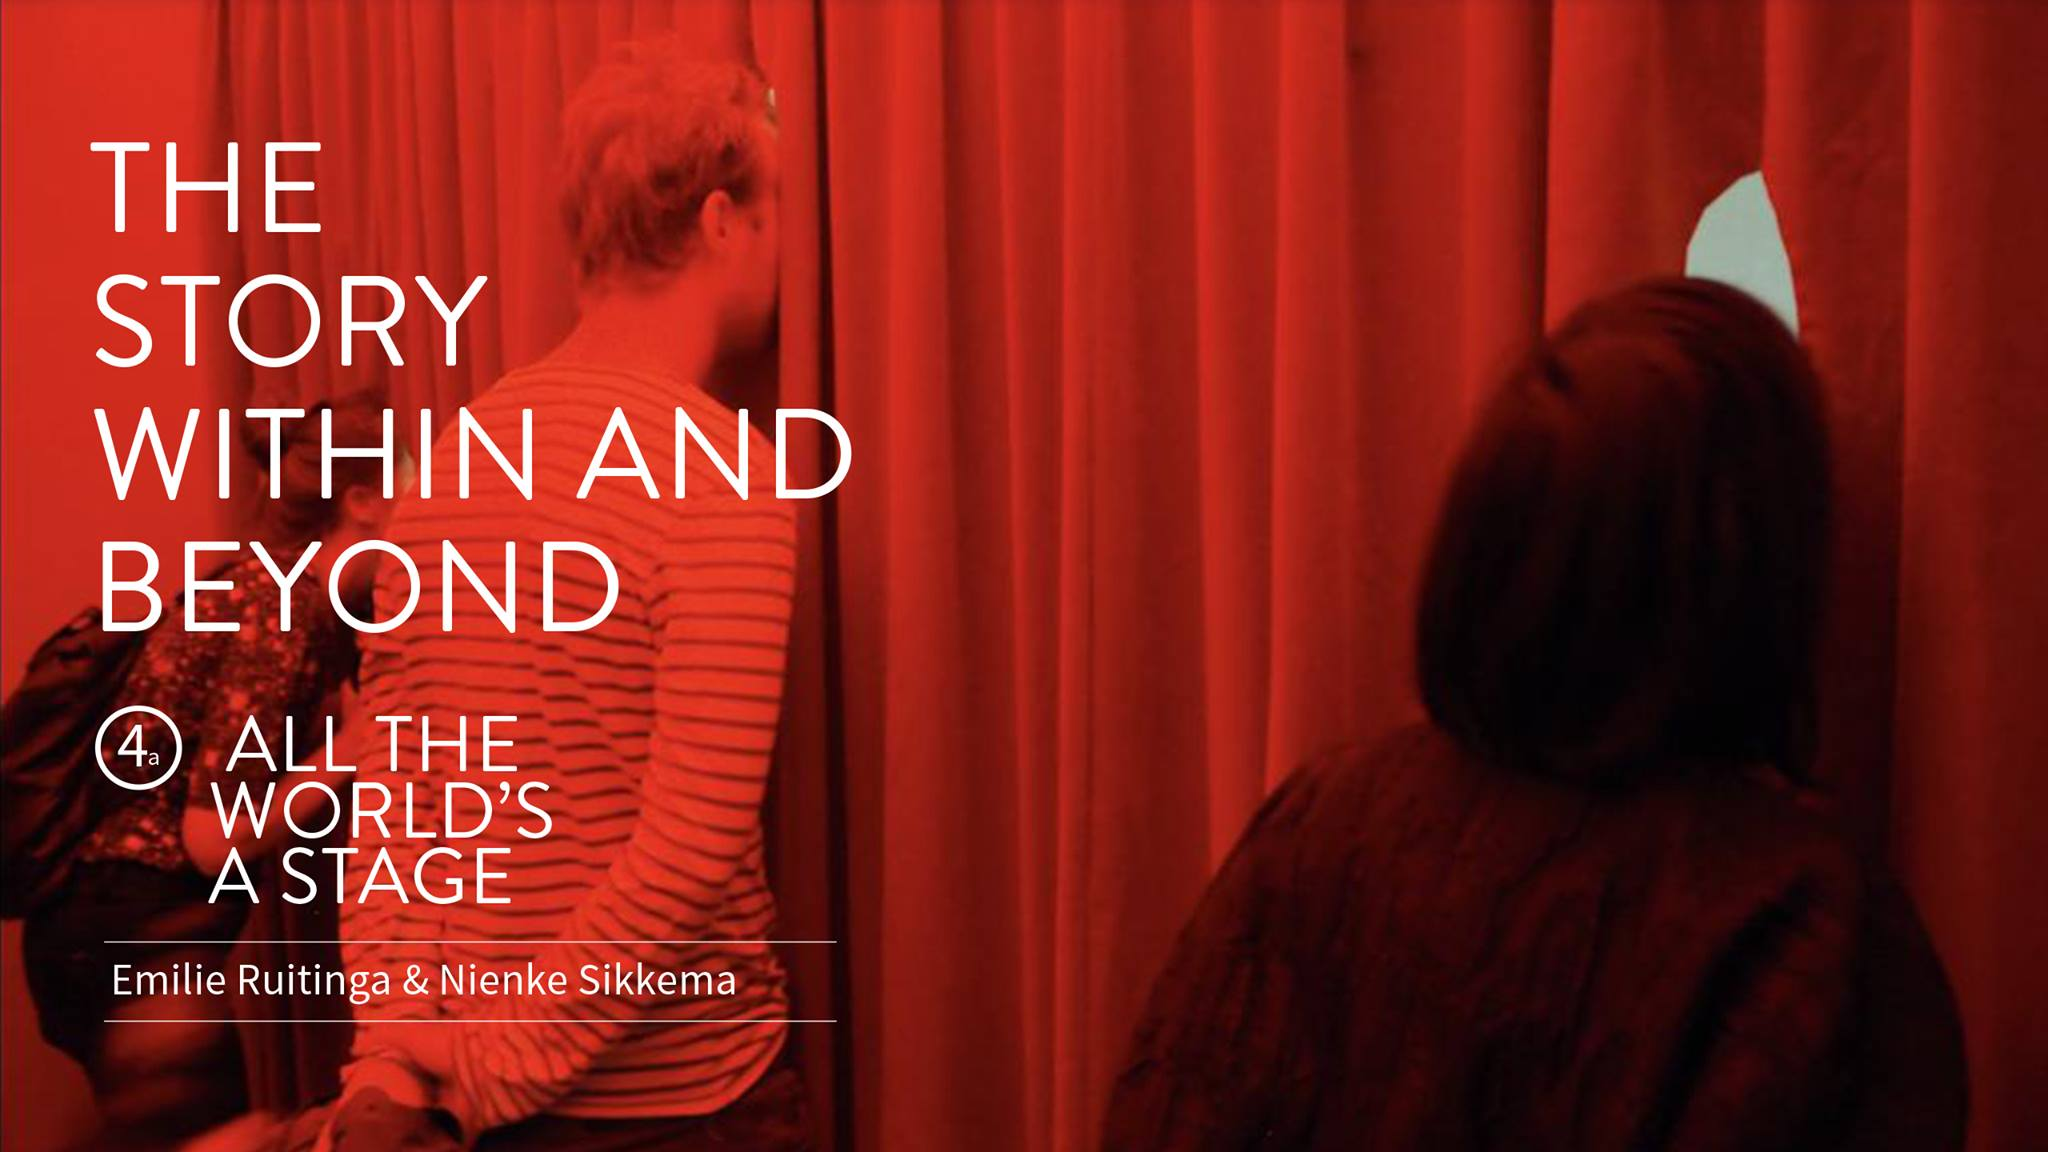 THE STORY WITHIN AND BEYOND ALL THE WORLD'S A STAGE - PART IVa: Emilie Ruitinga & Nienke SikkemaMAY 4TH - MAY 20THOPENING: FRIDAY, MAY 4th, 19:00 HOPEN: FRI - SUN | 13:00 - 17:00 H